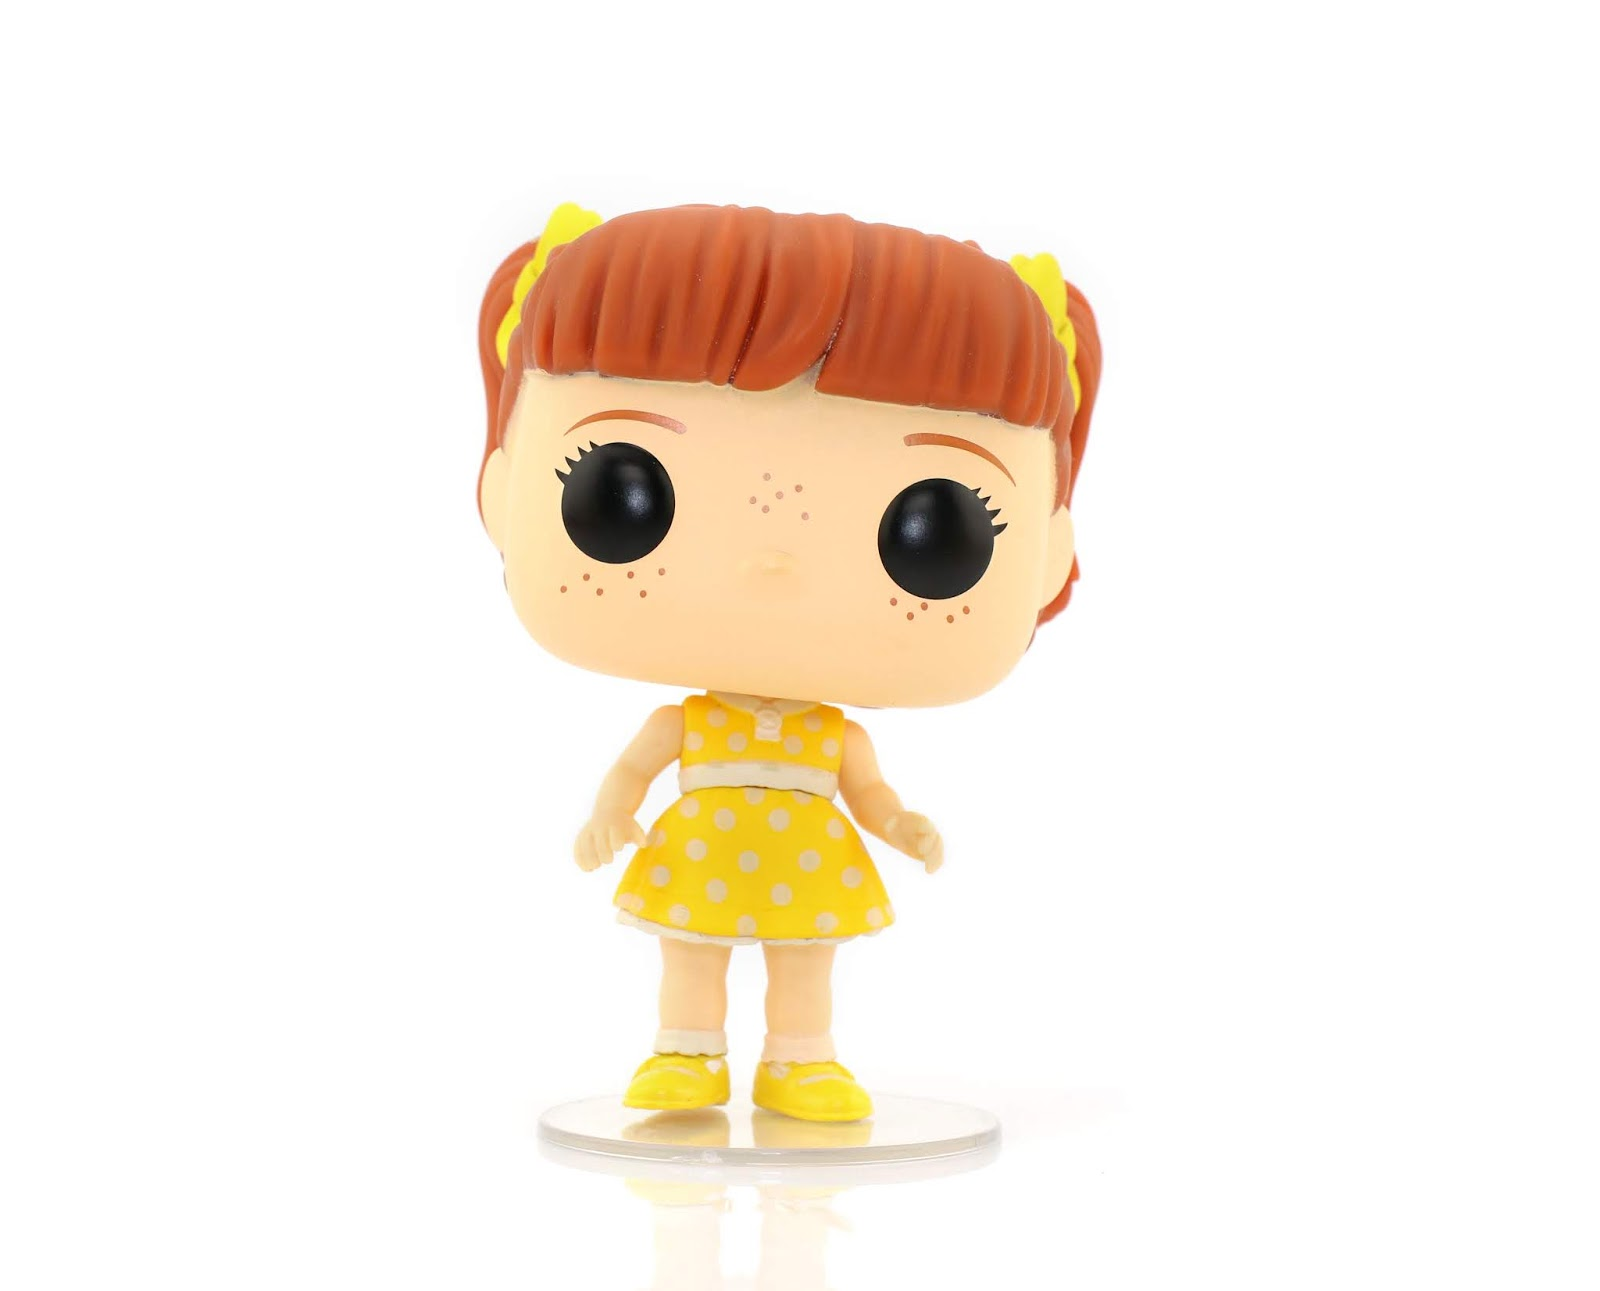 toy story 4 funko pop collection gabby gabby